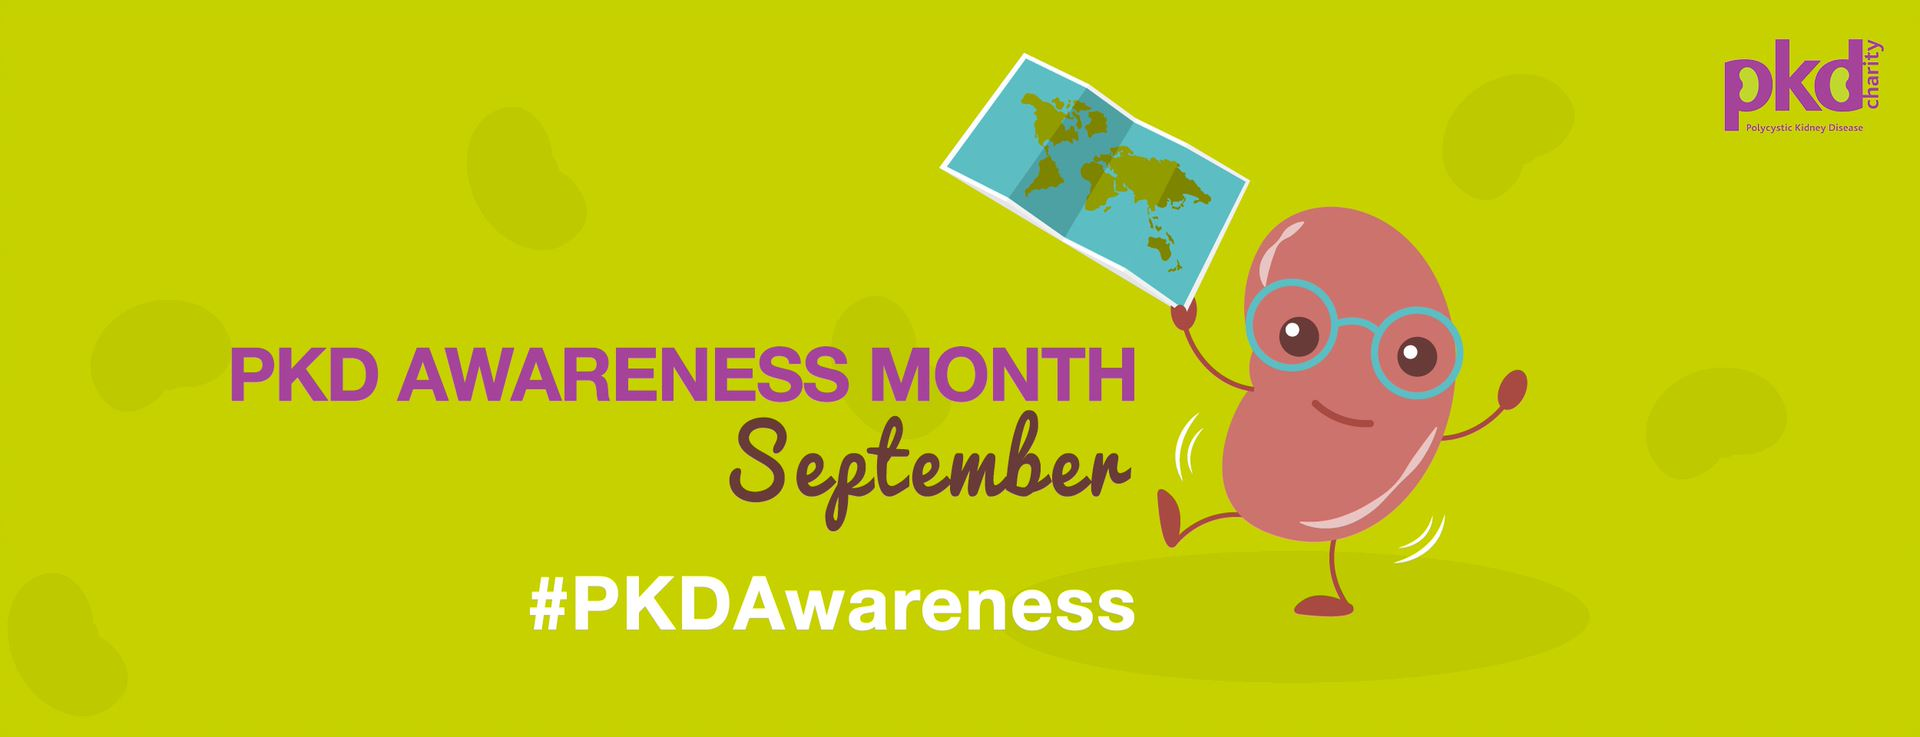 PKD_Awareness_Month